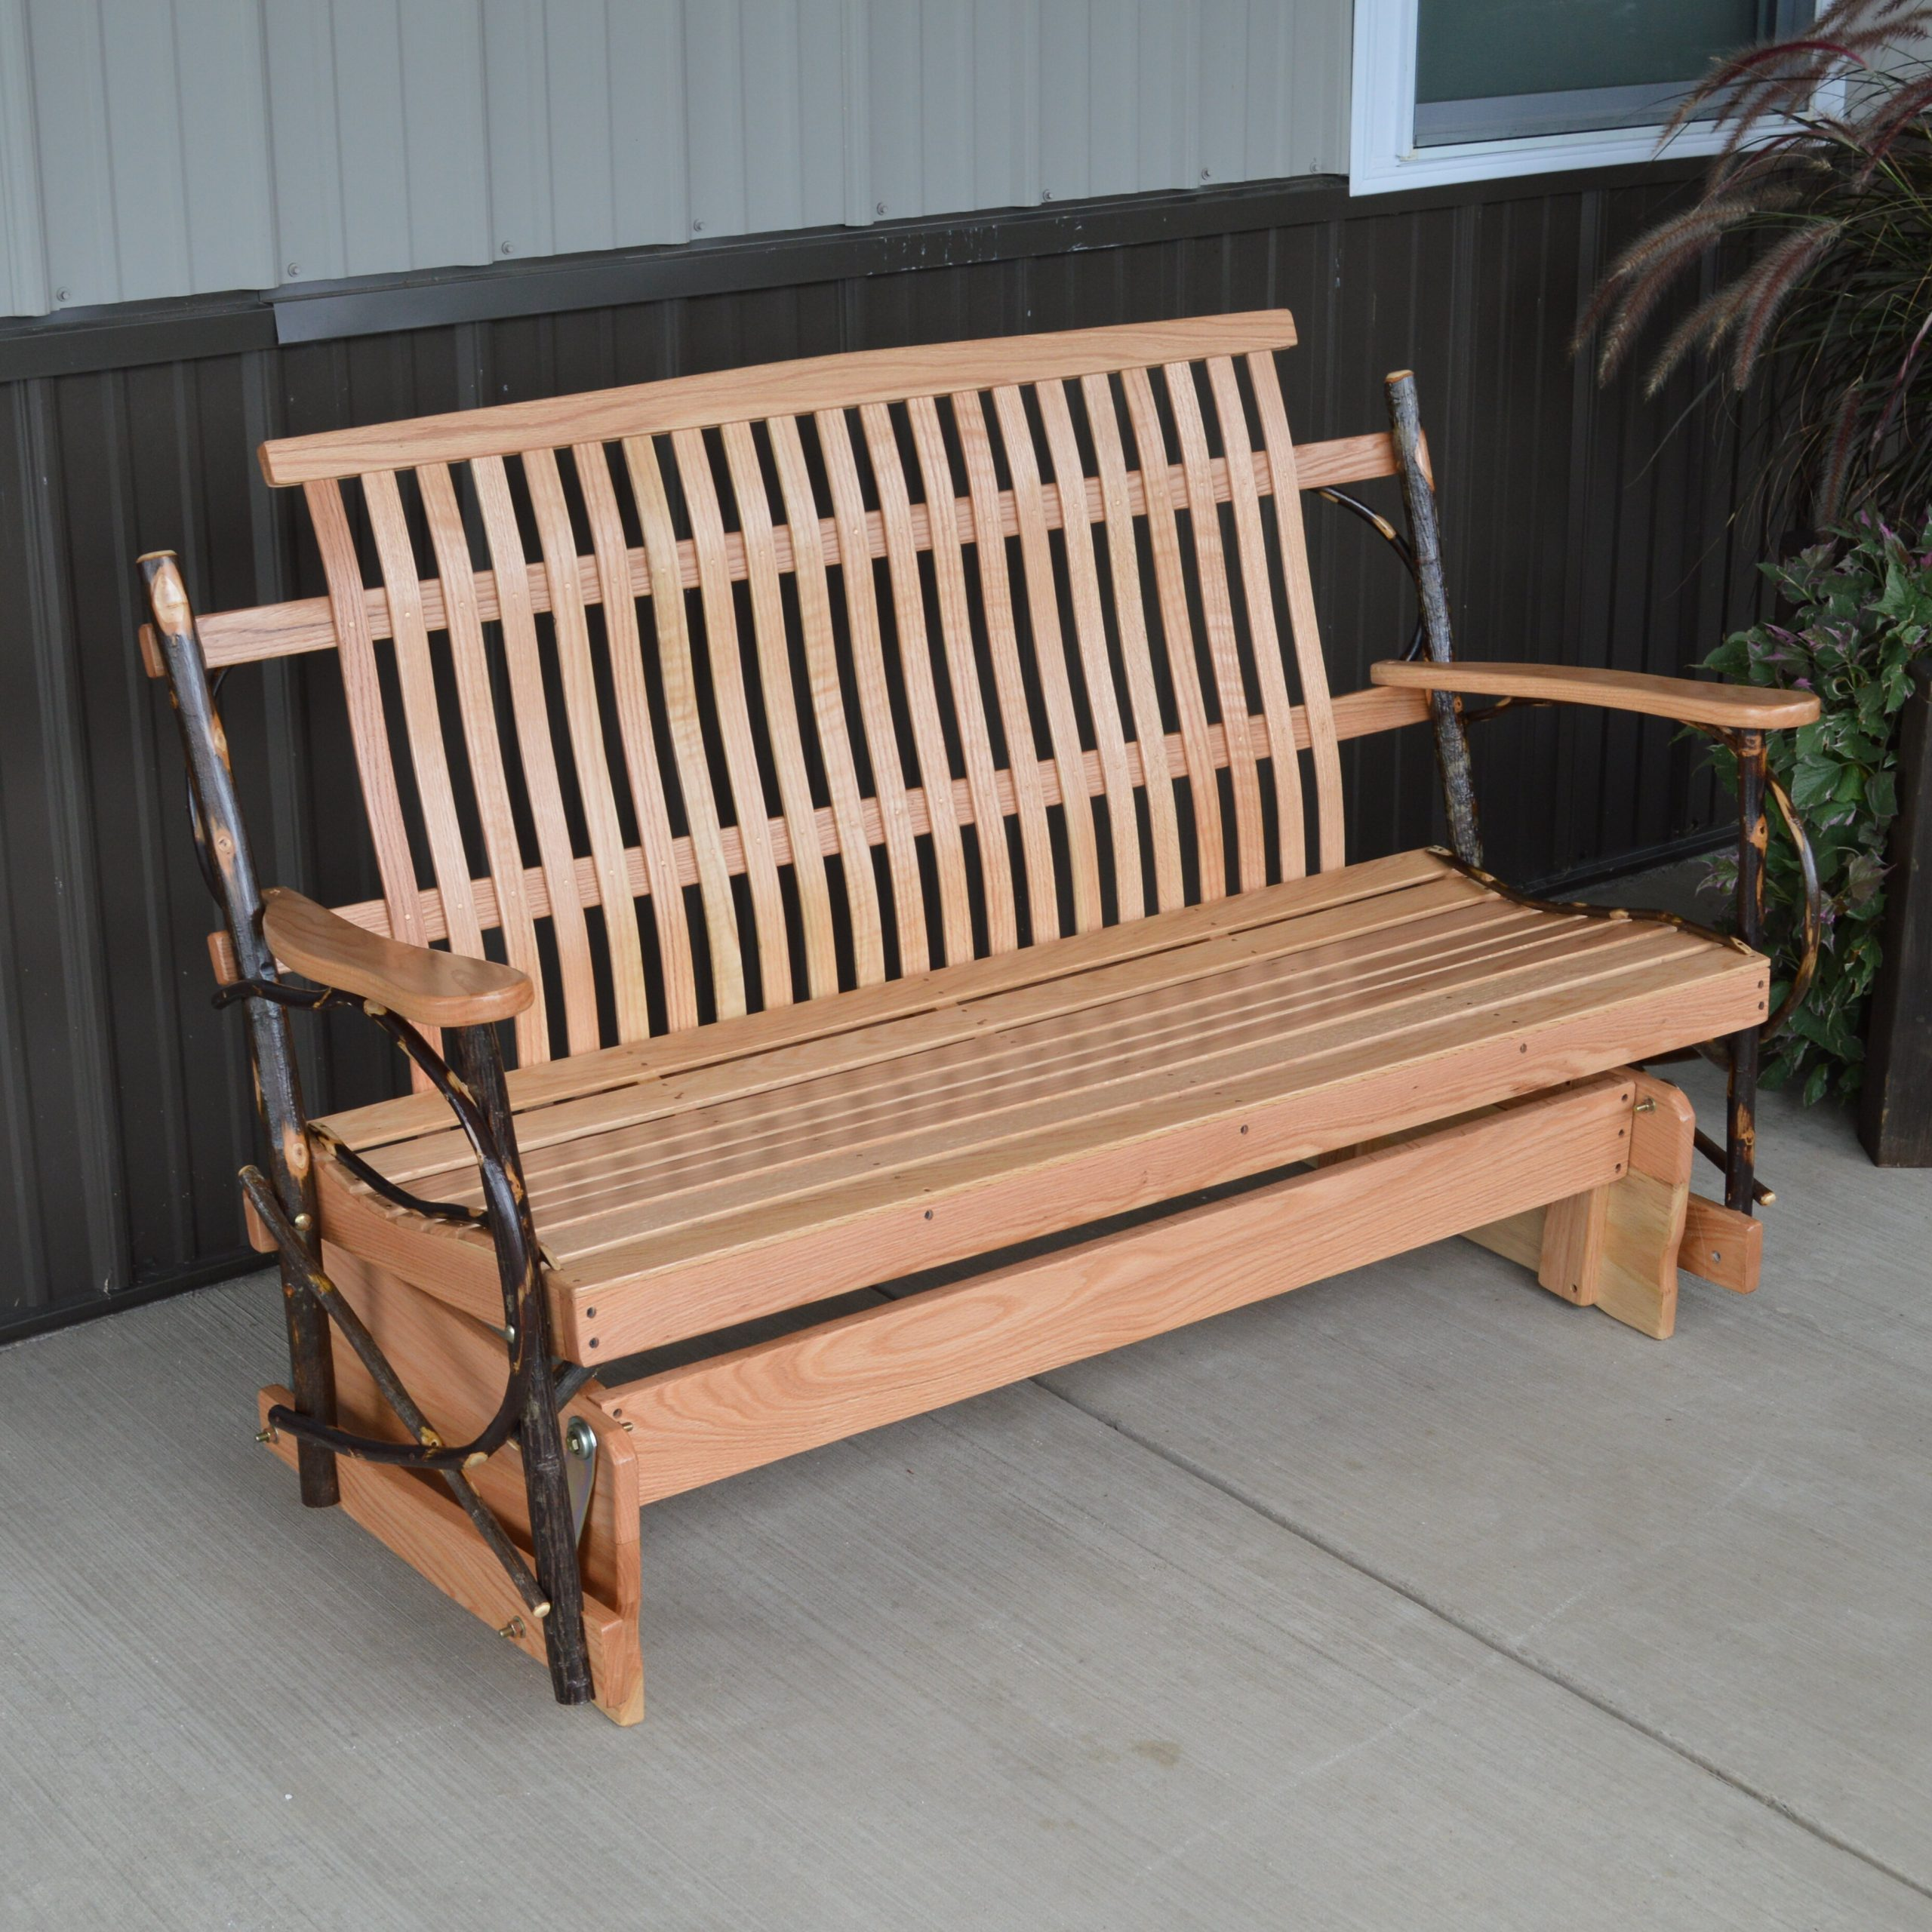 Loon Peak Valeria Hickory Porch Glider Bench | Wayfair Throughout Cedar Colonial Style Glider Benches (View 3 of 25)